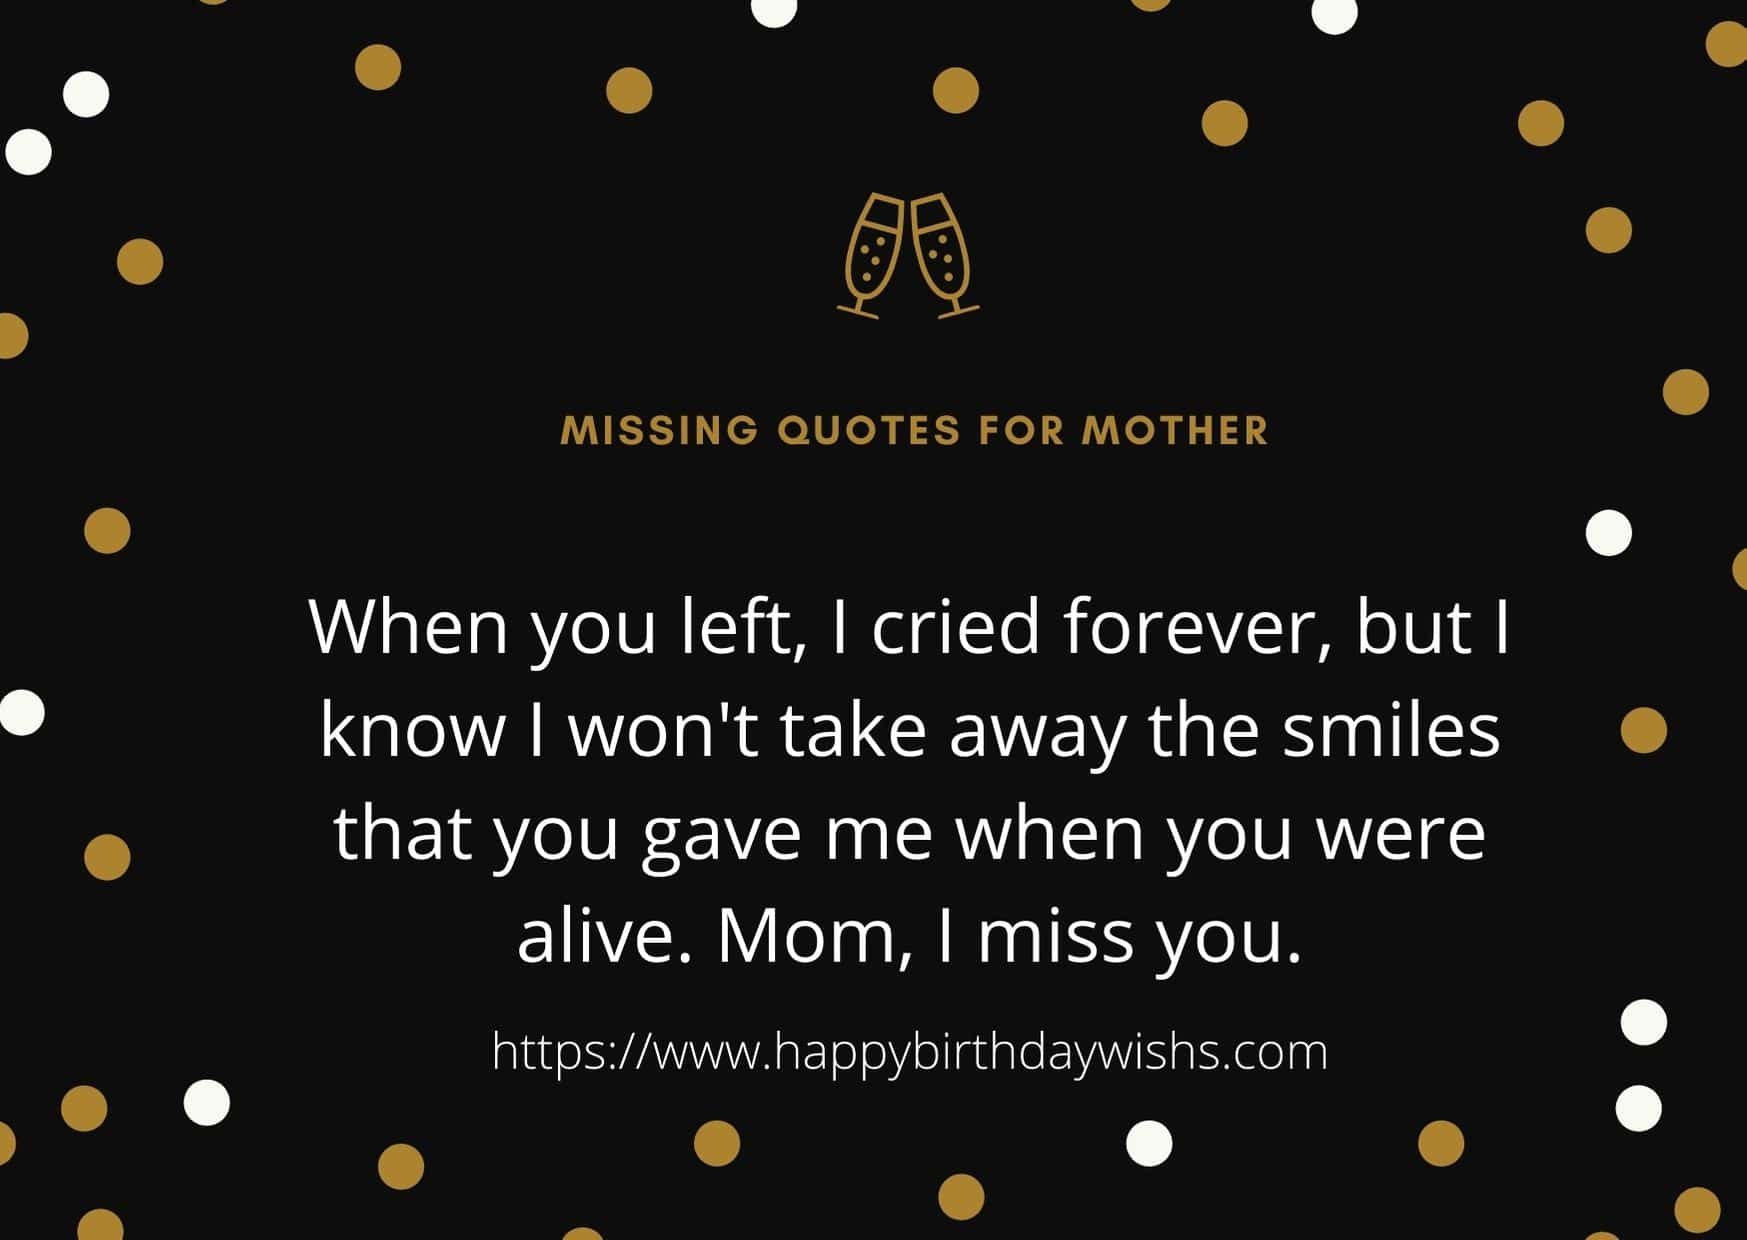 Missing Quotes for Mother